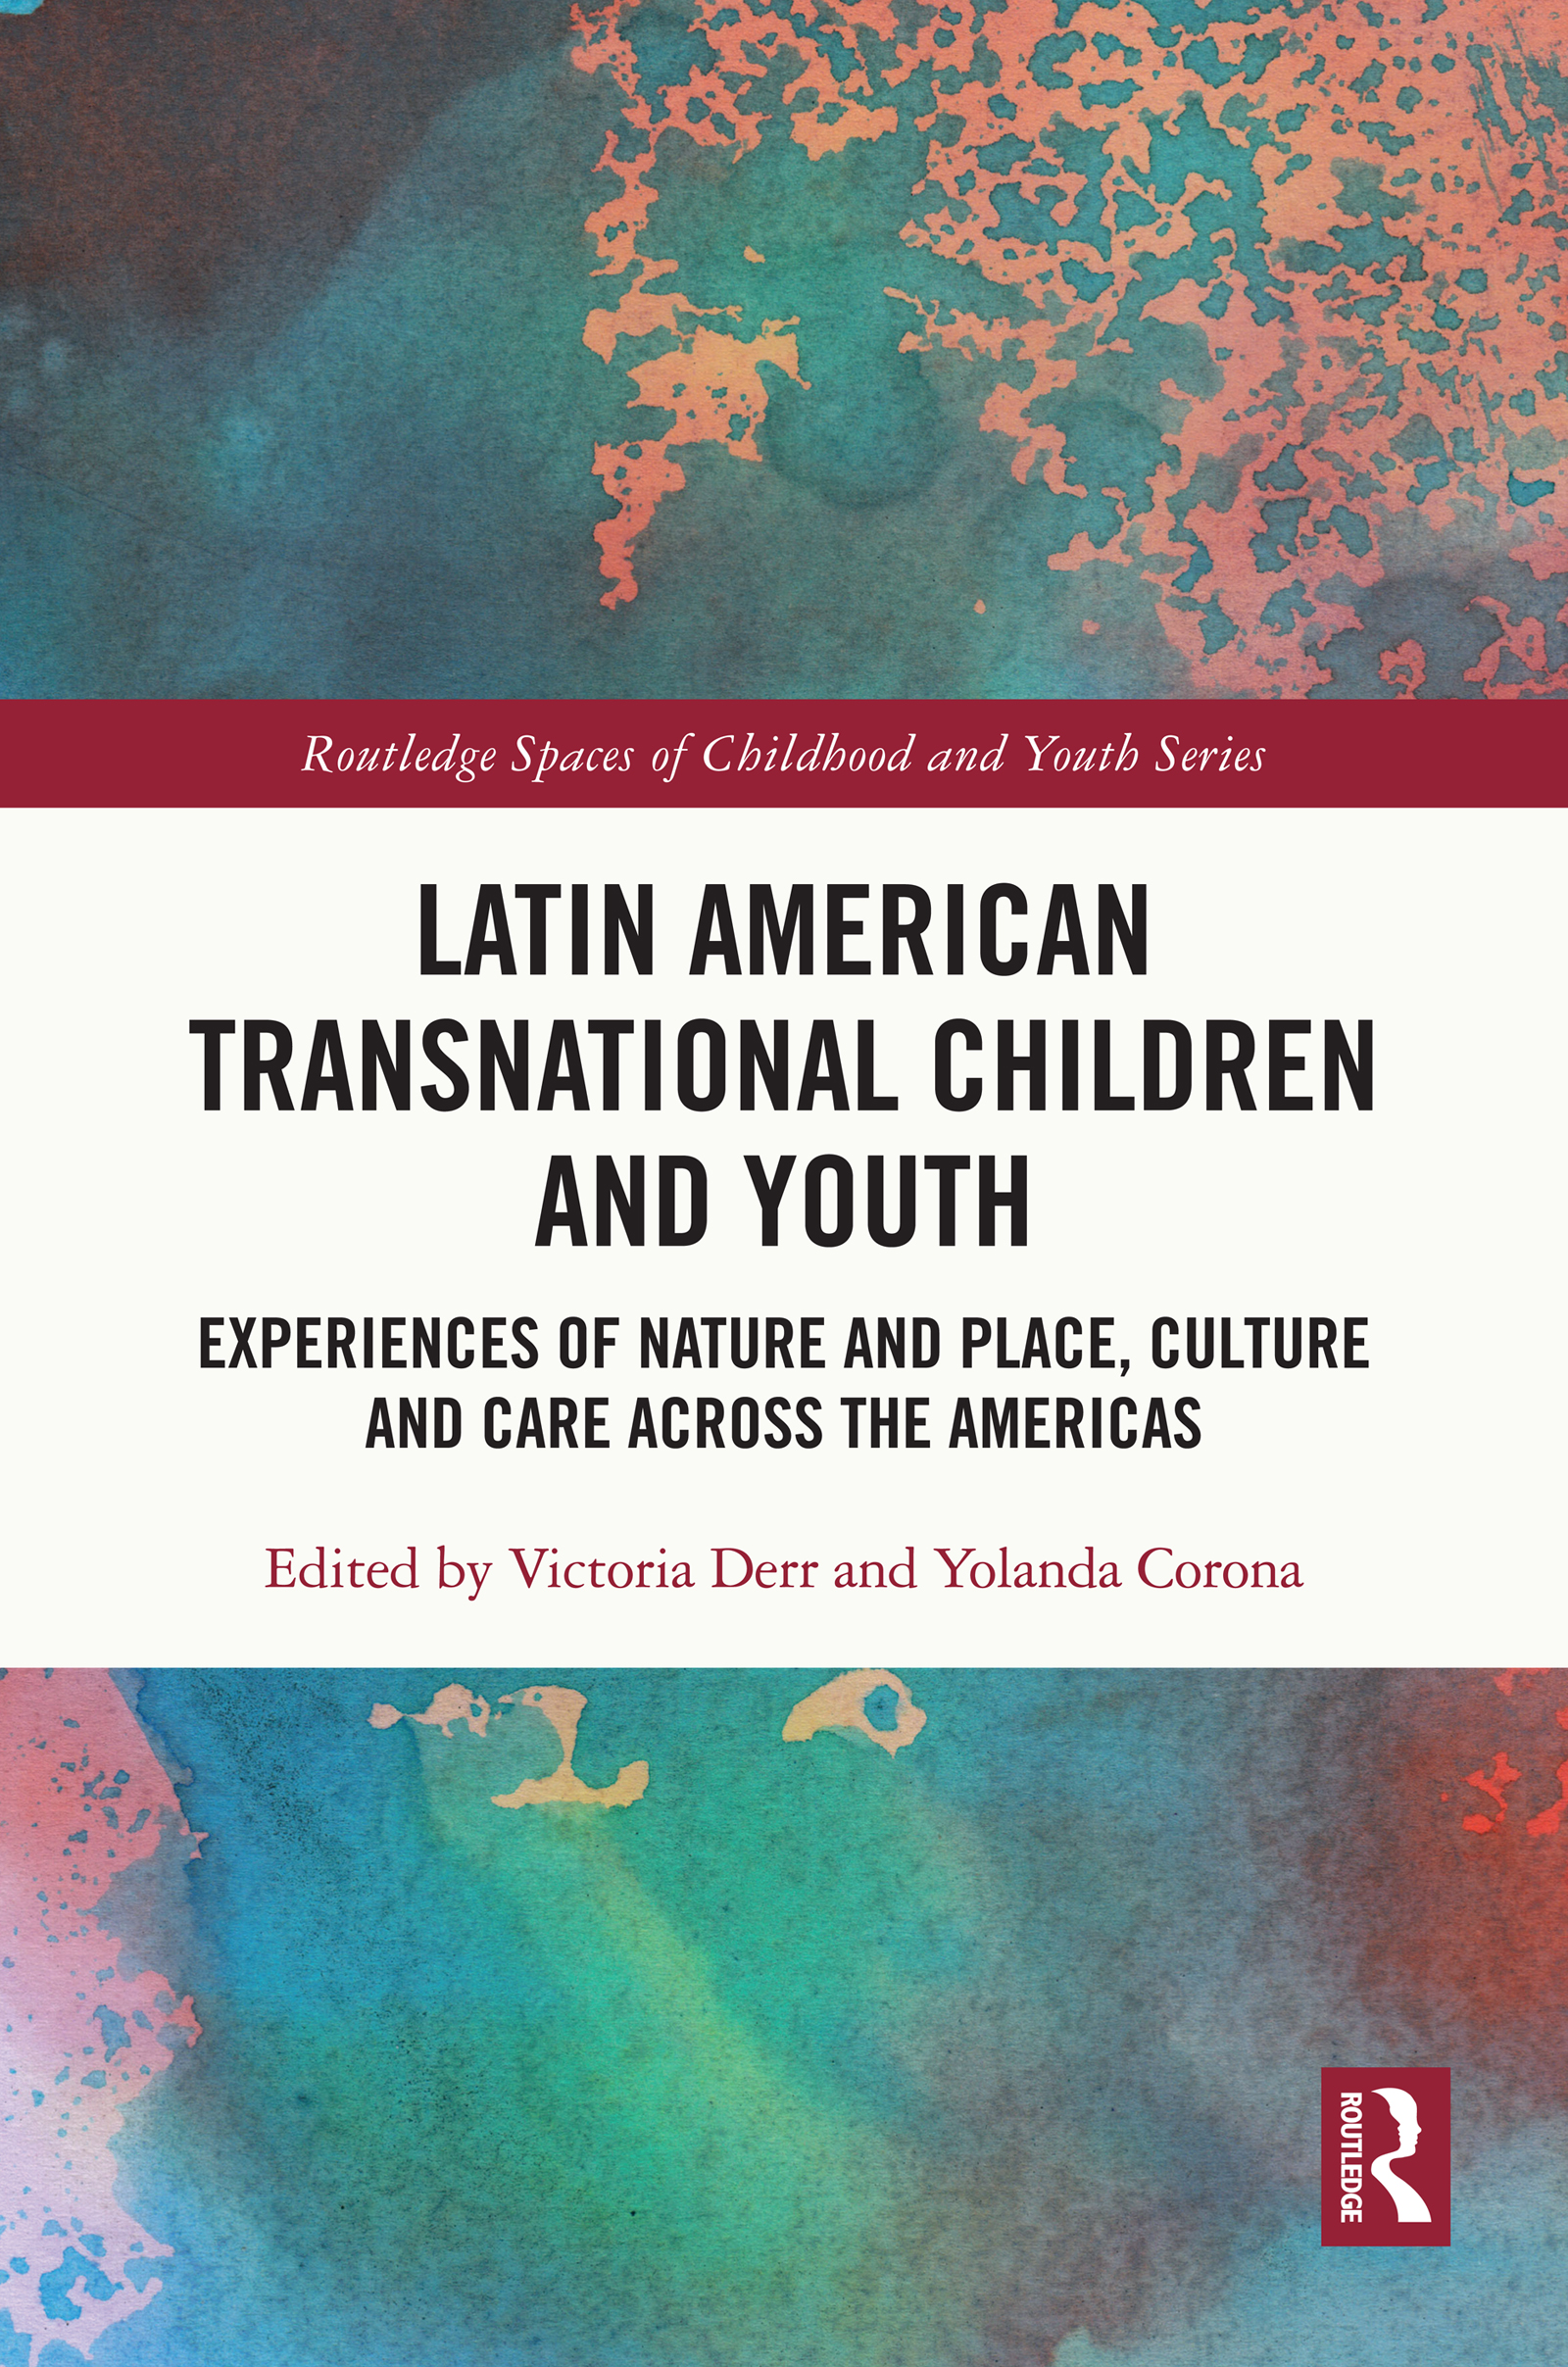 The relationship between outdoor nature and Latinx children's sense of place